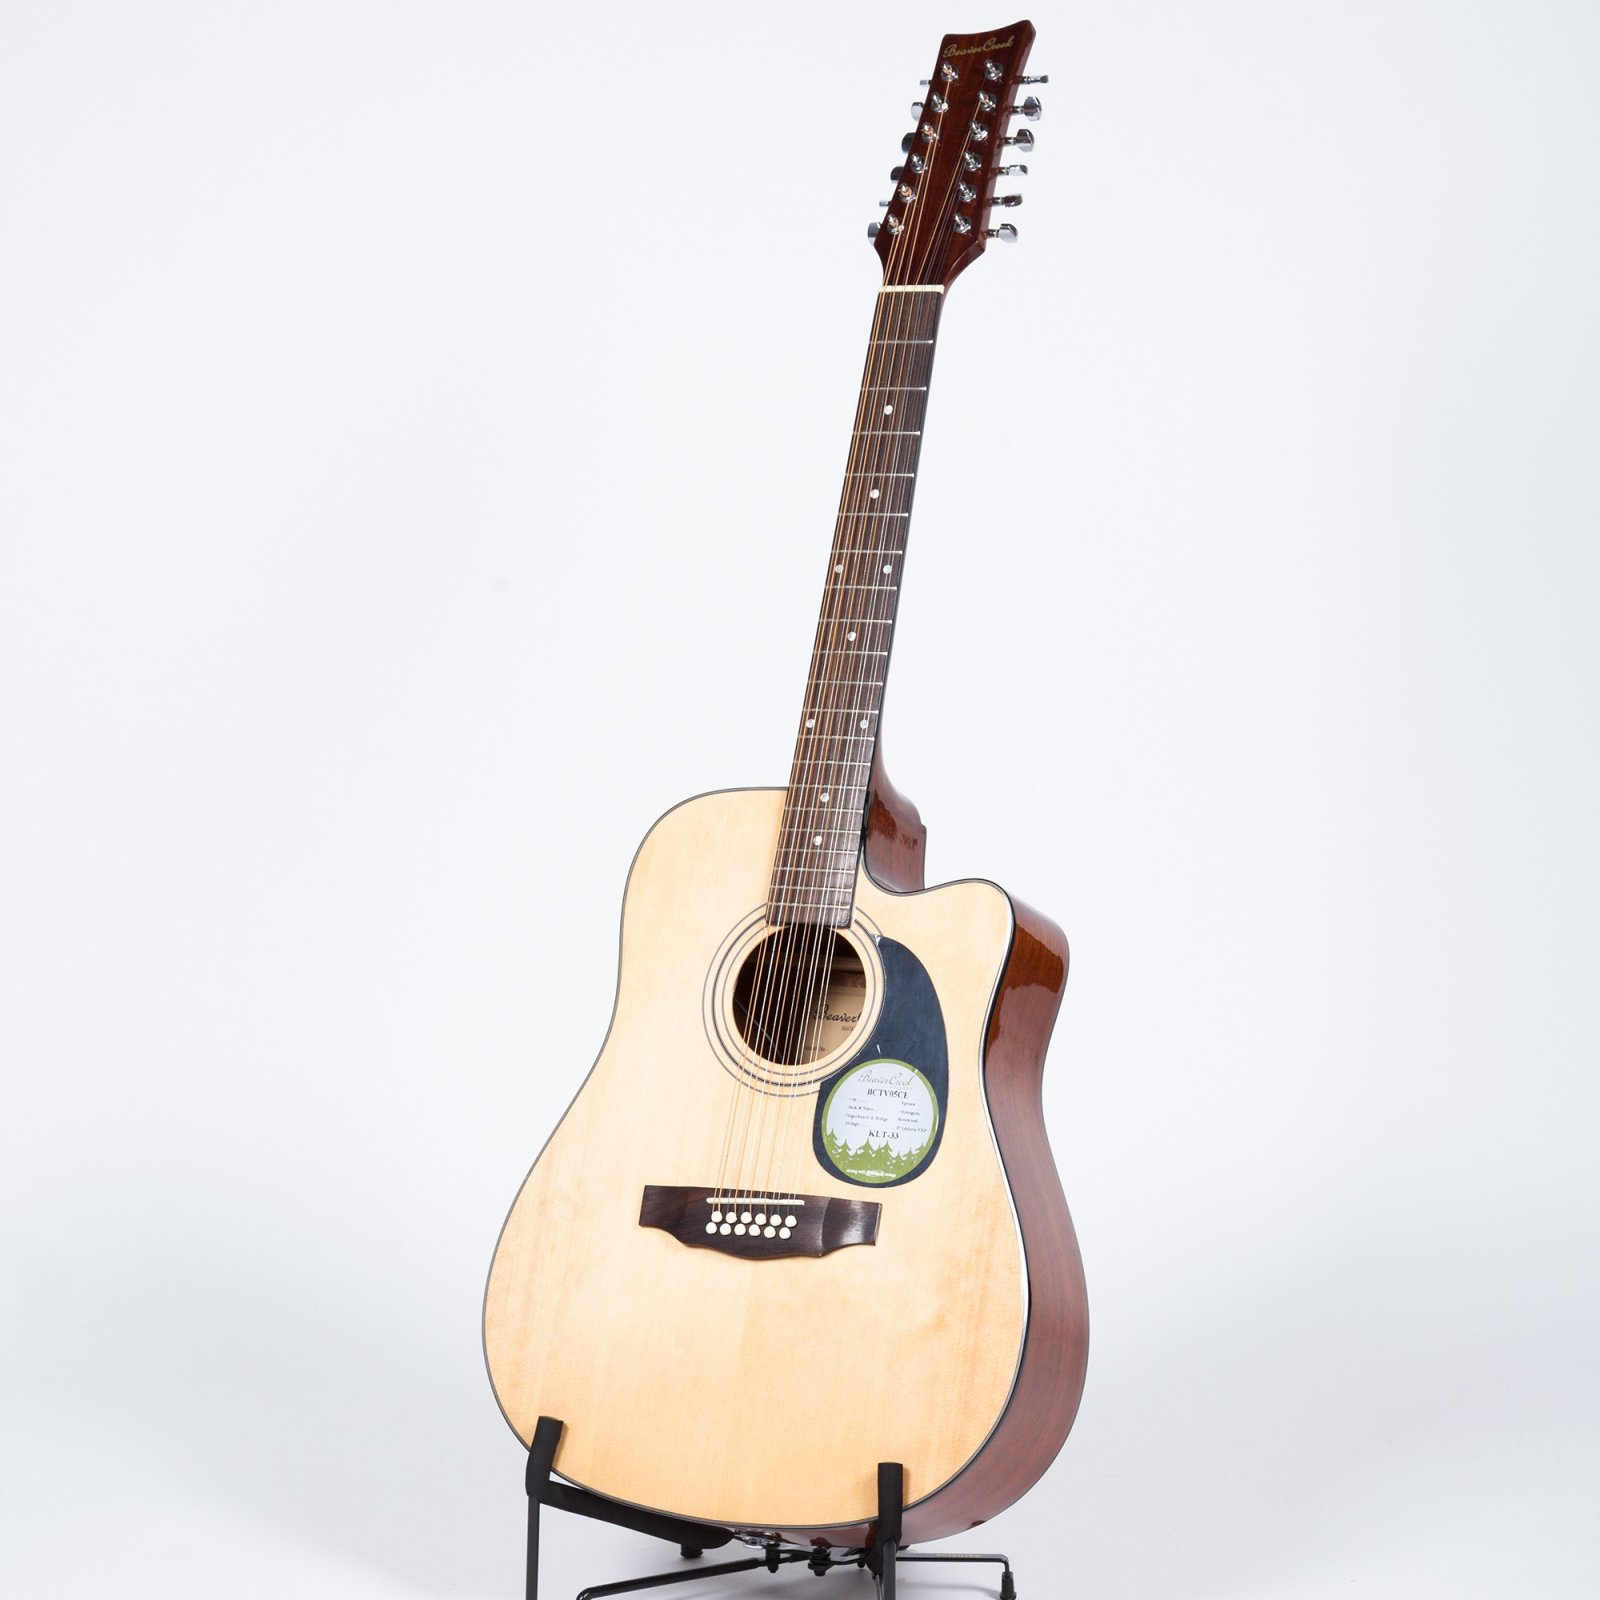 BEAVER CREEK 12 String Dreadnought Acoustic/Electric